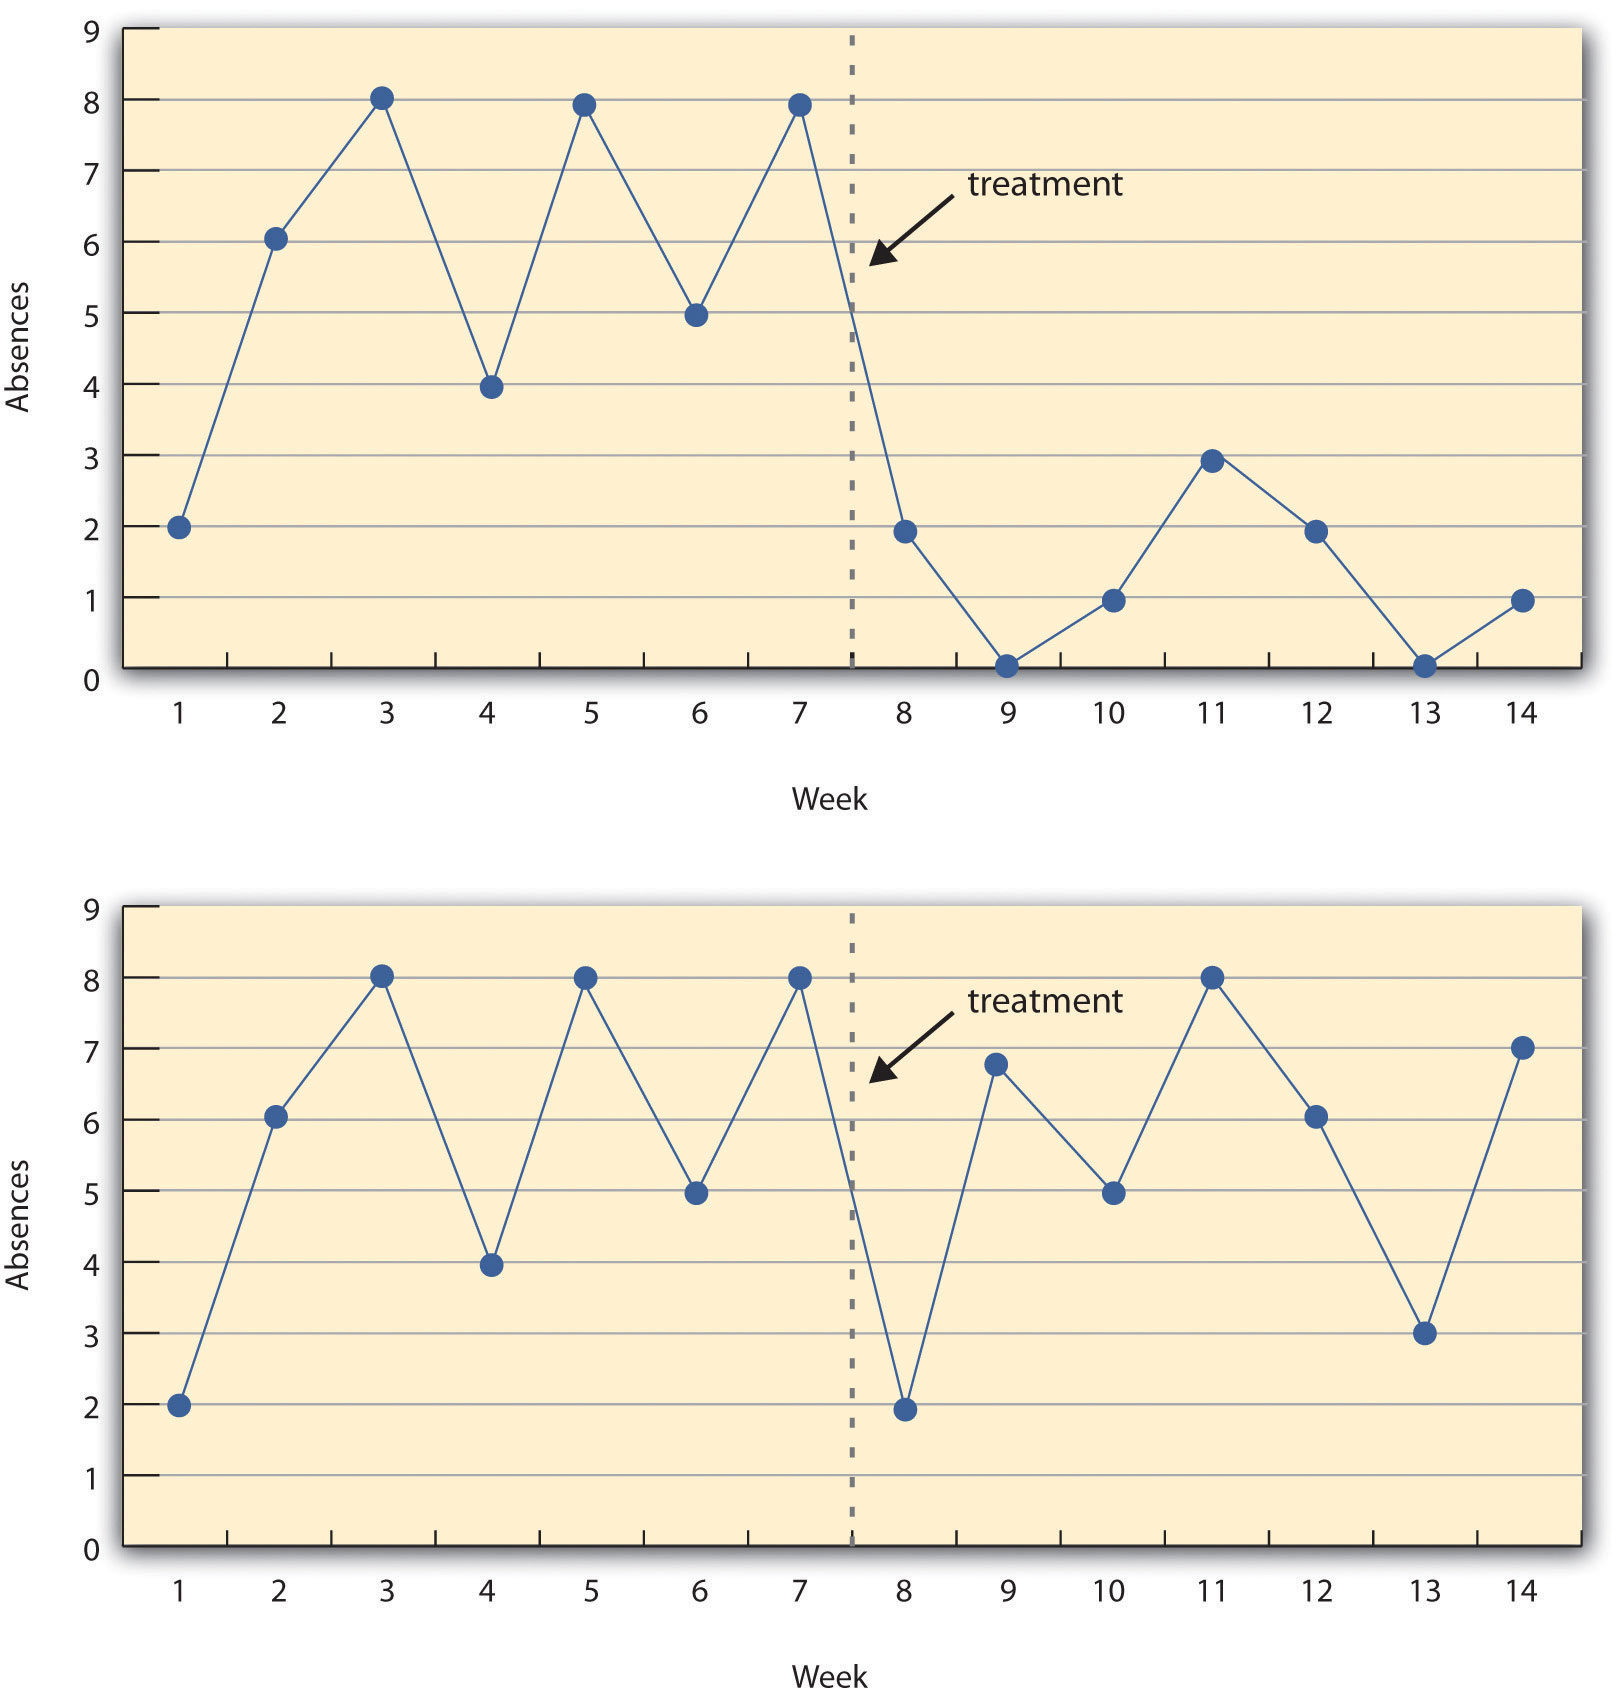 A Hypothetical Interrupted Time-Series Design - The top panel shows data that suggest that the treatment caused a reduction in absences. The bottom panel shows data that suggest that it did not